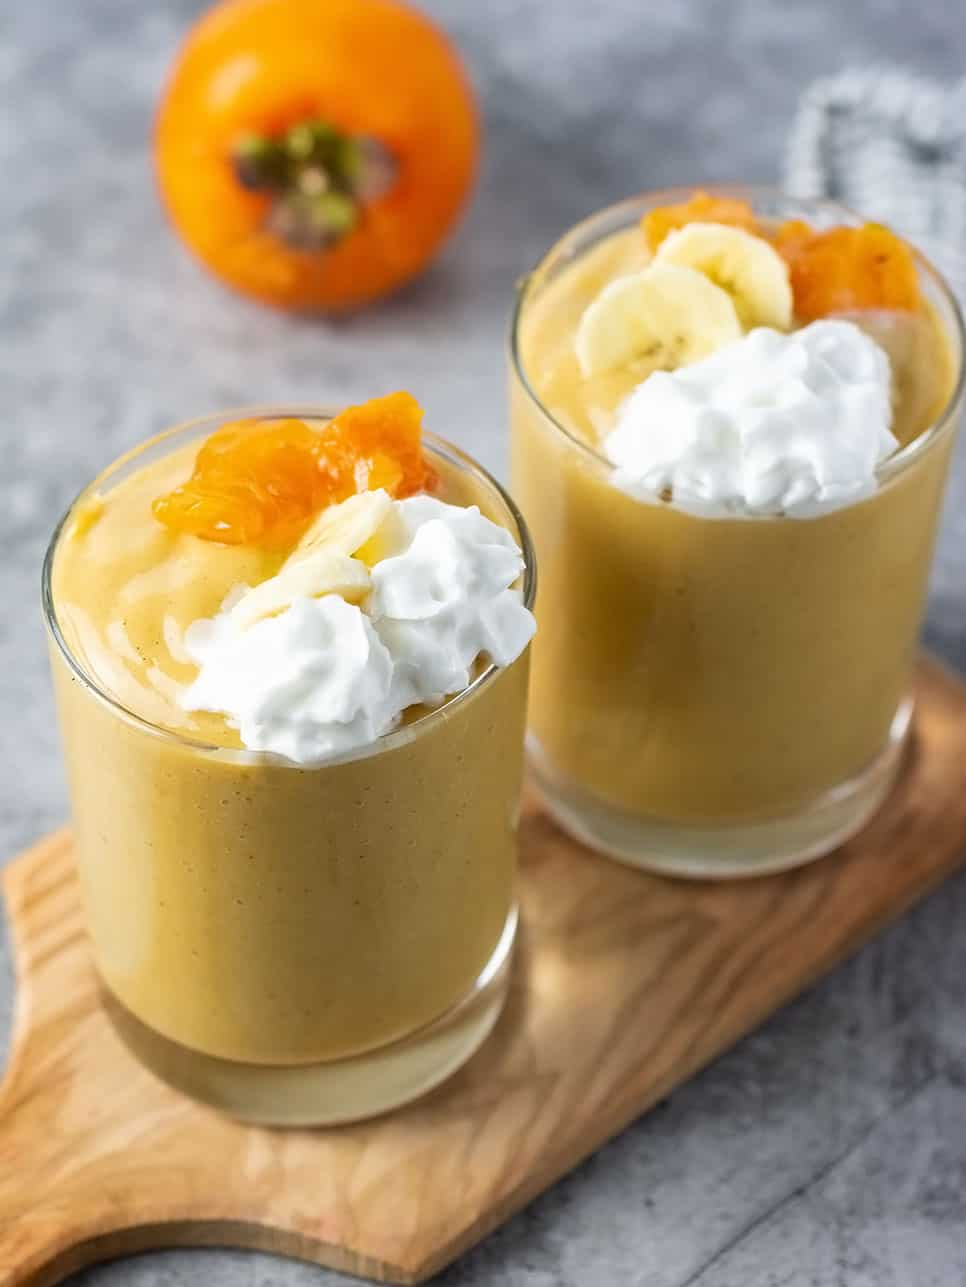 two persimmon smoothie with whipped cream, banana, and persimmon on top, and a persimmon in the background